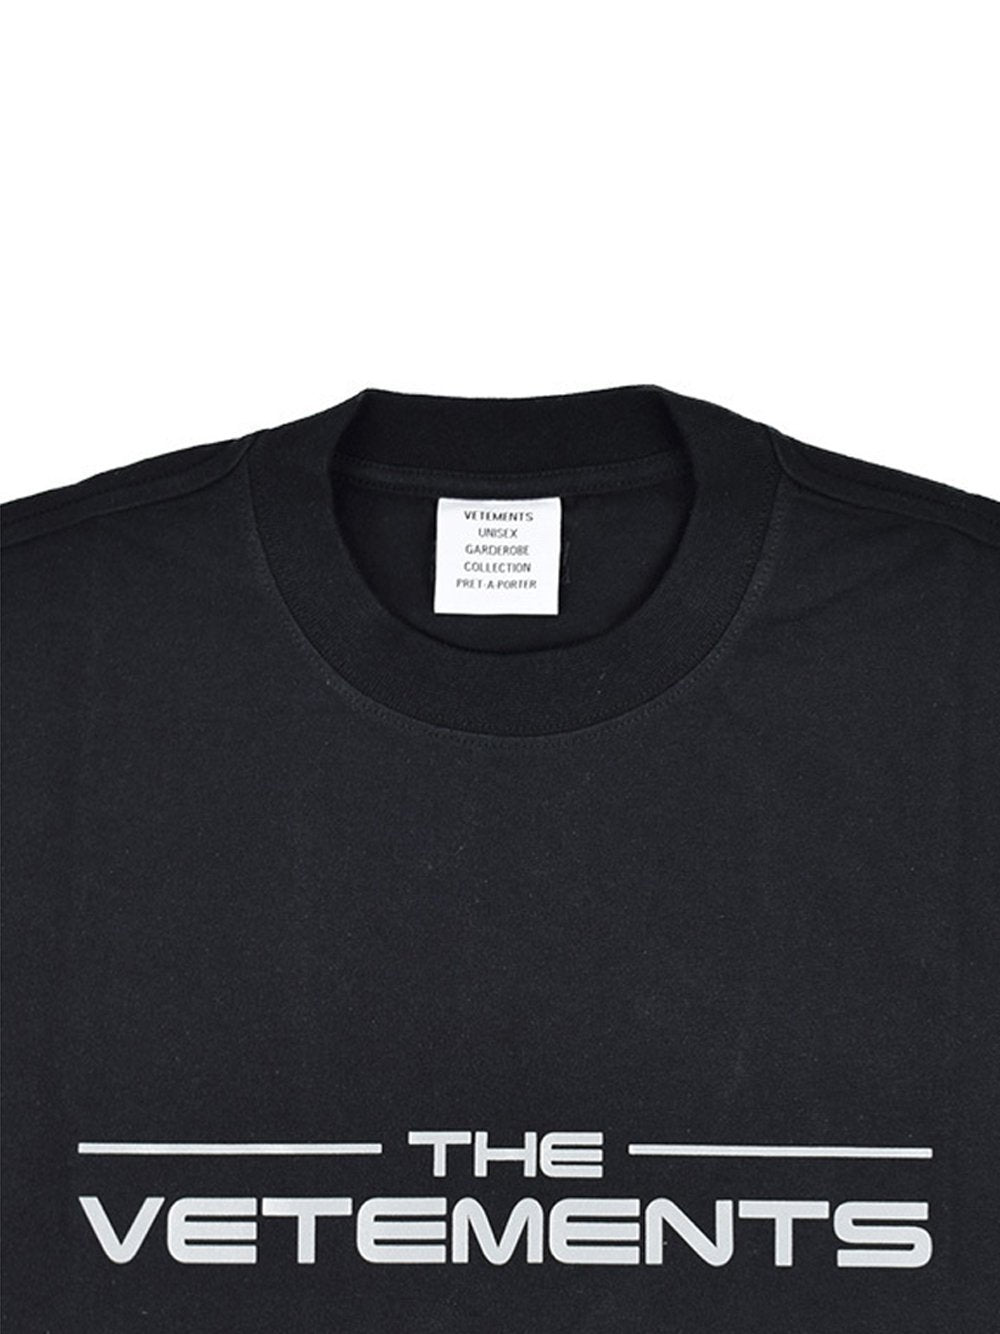 VETEMENTS Logo T-Shirt Black